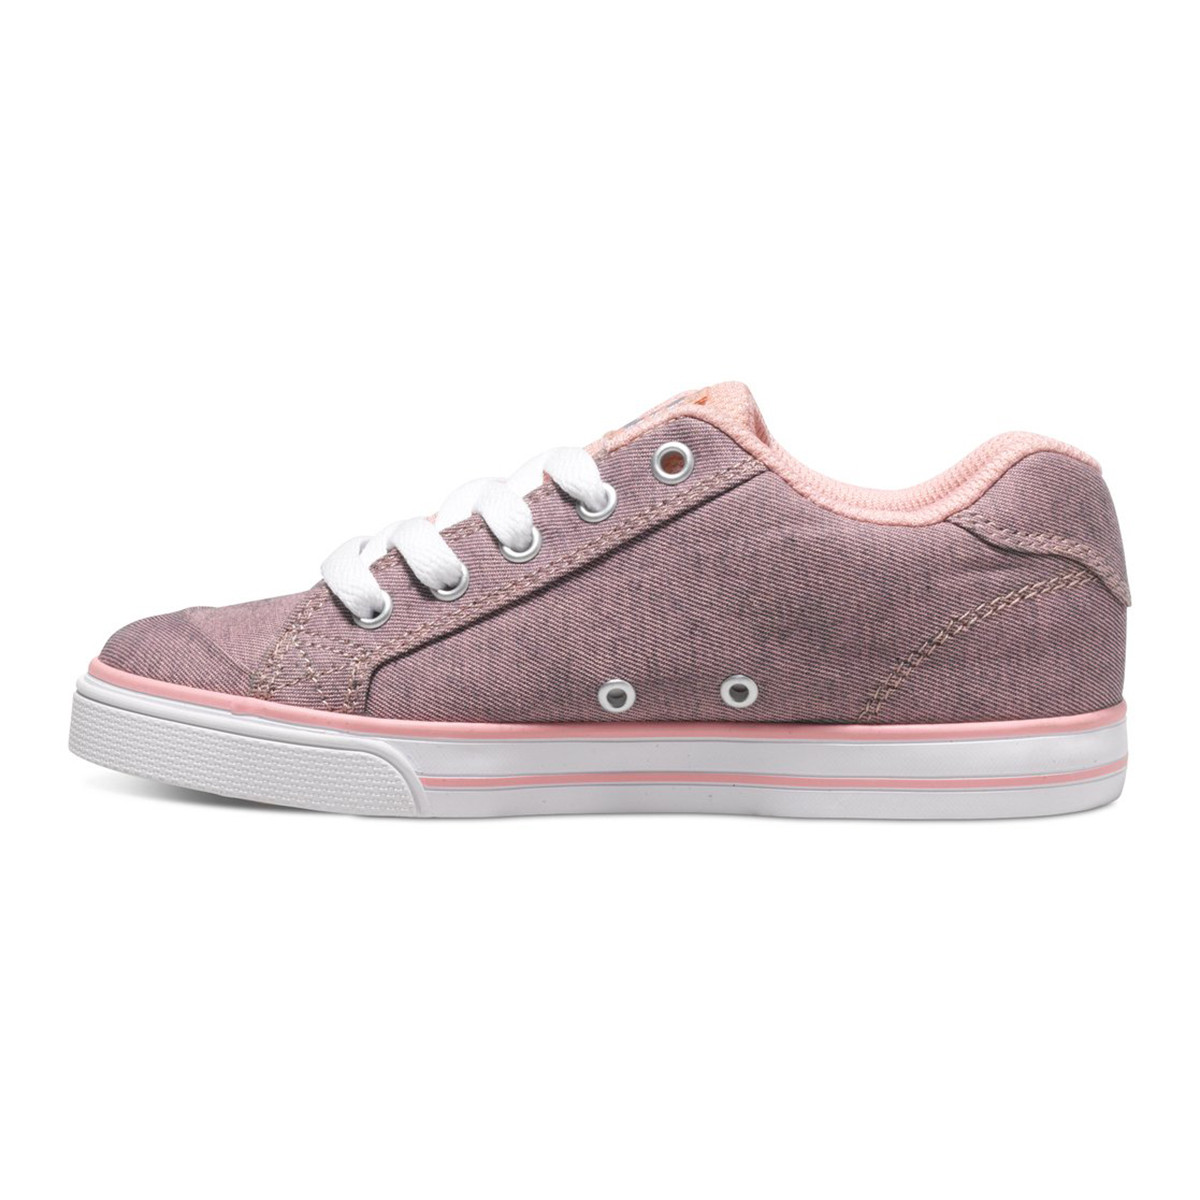 Chaussures Chelsea Tx Se Pink With Silver - DC nBrAbOpJq